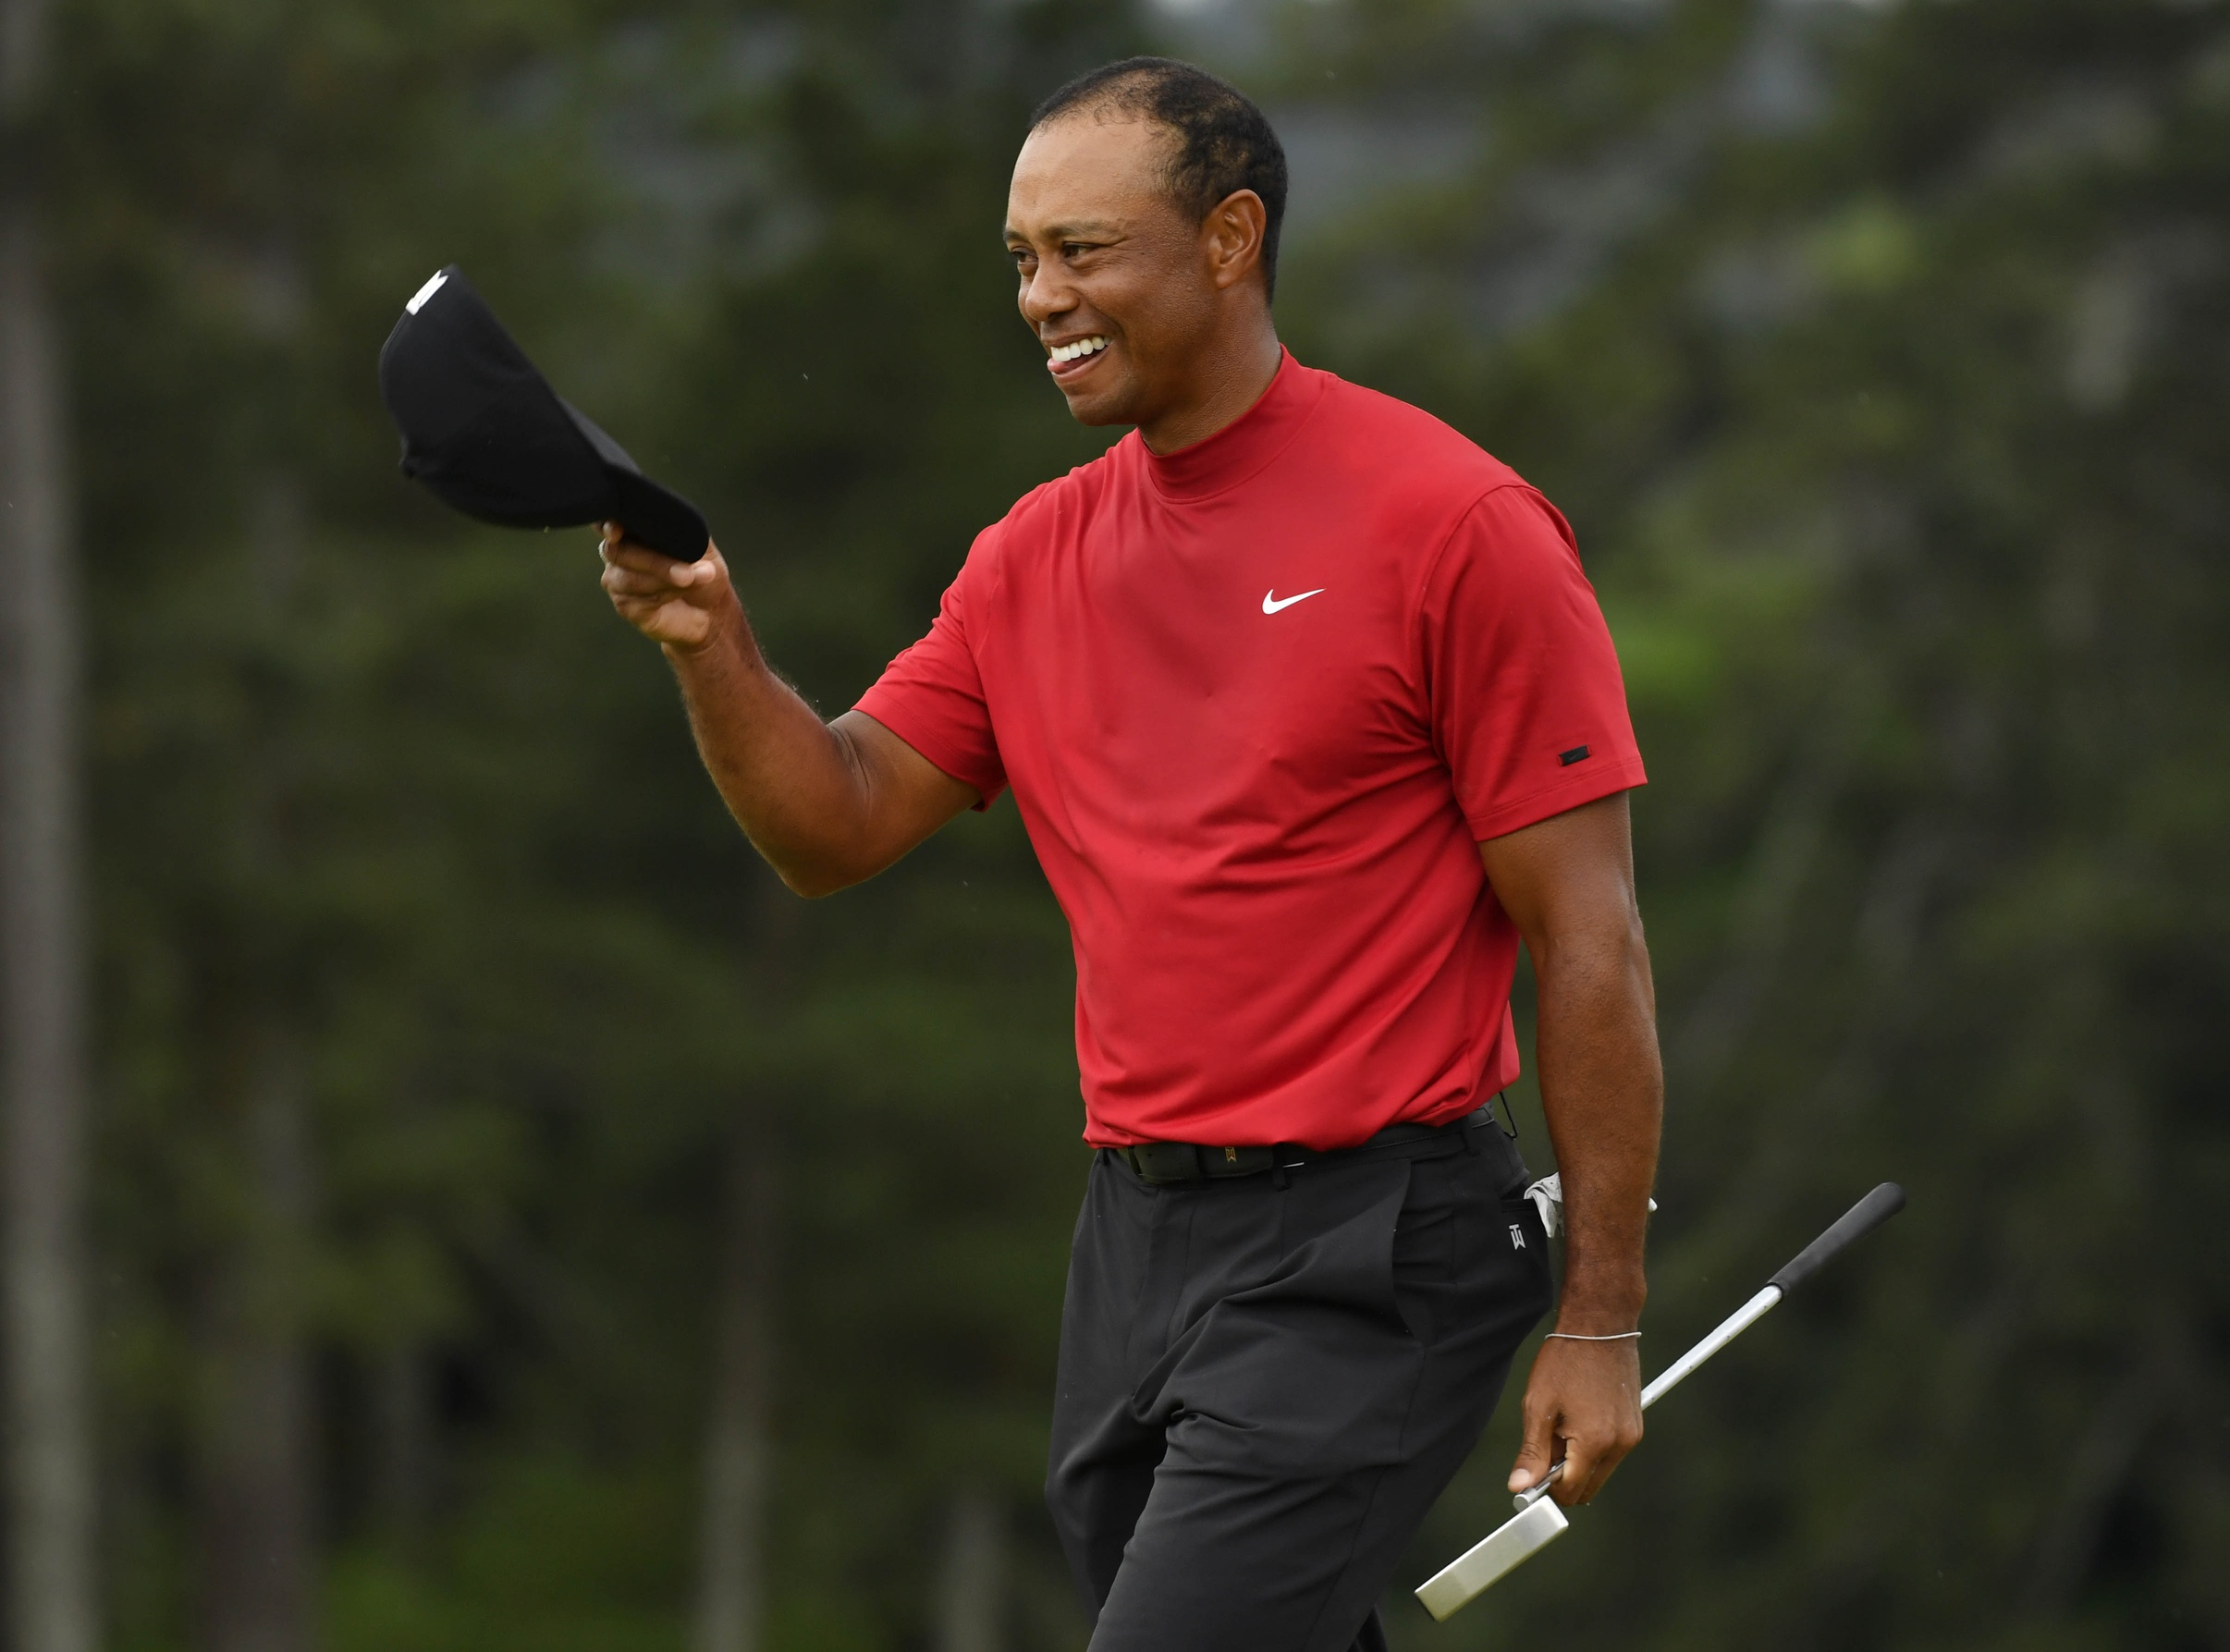 Trump awards Medal of Freedom to Tiger Woods